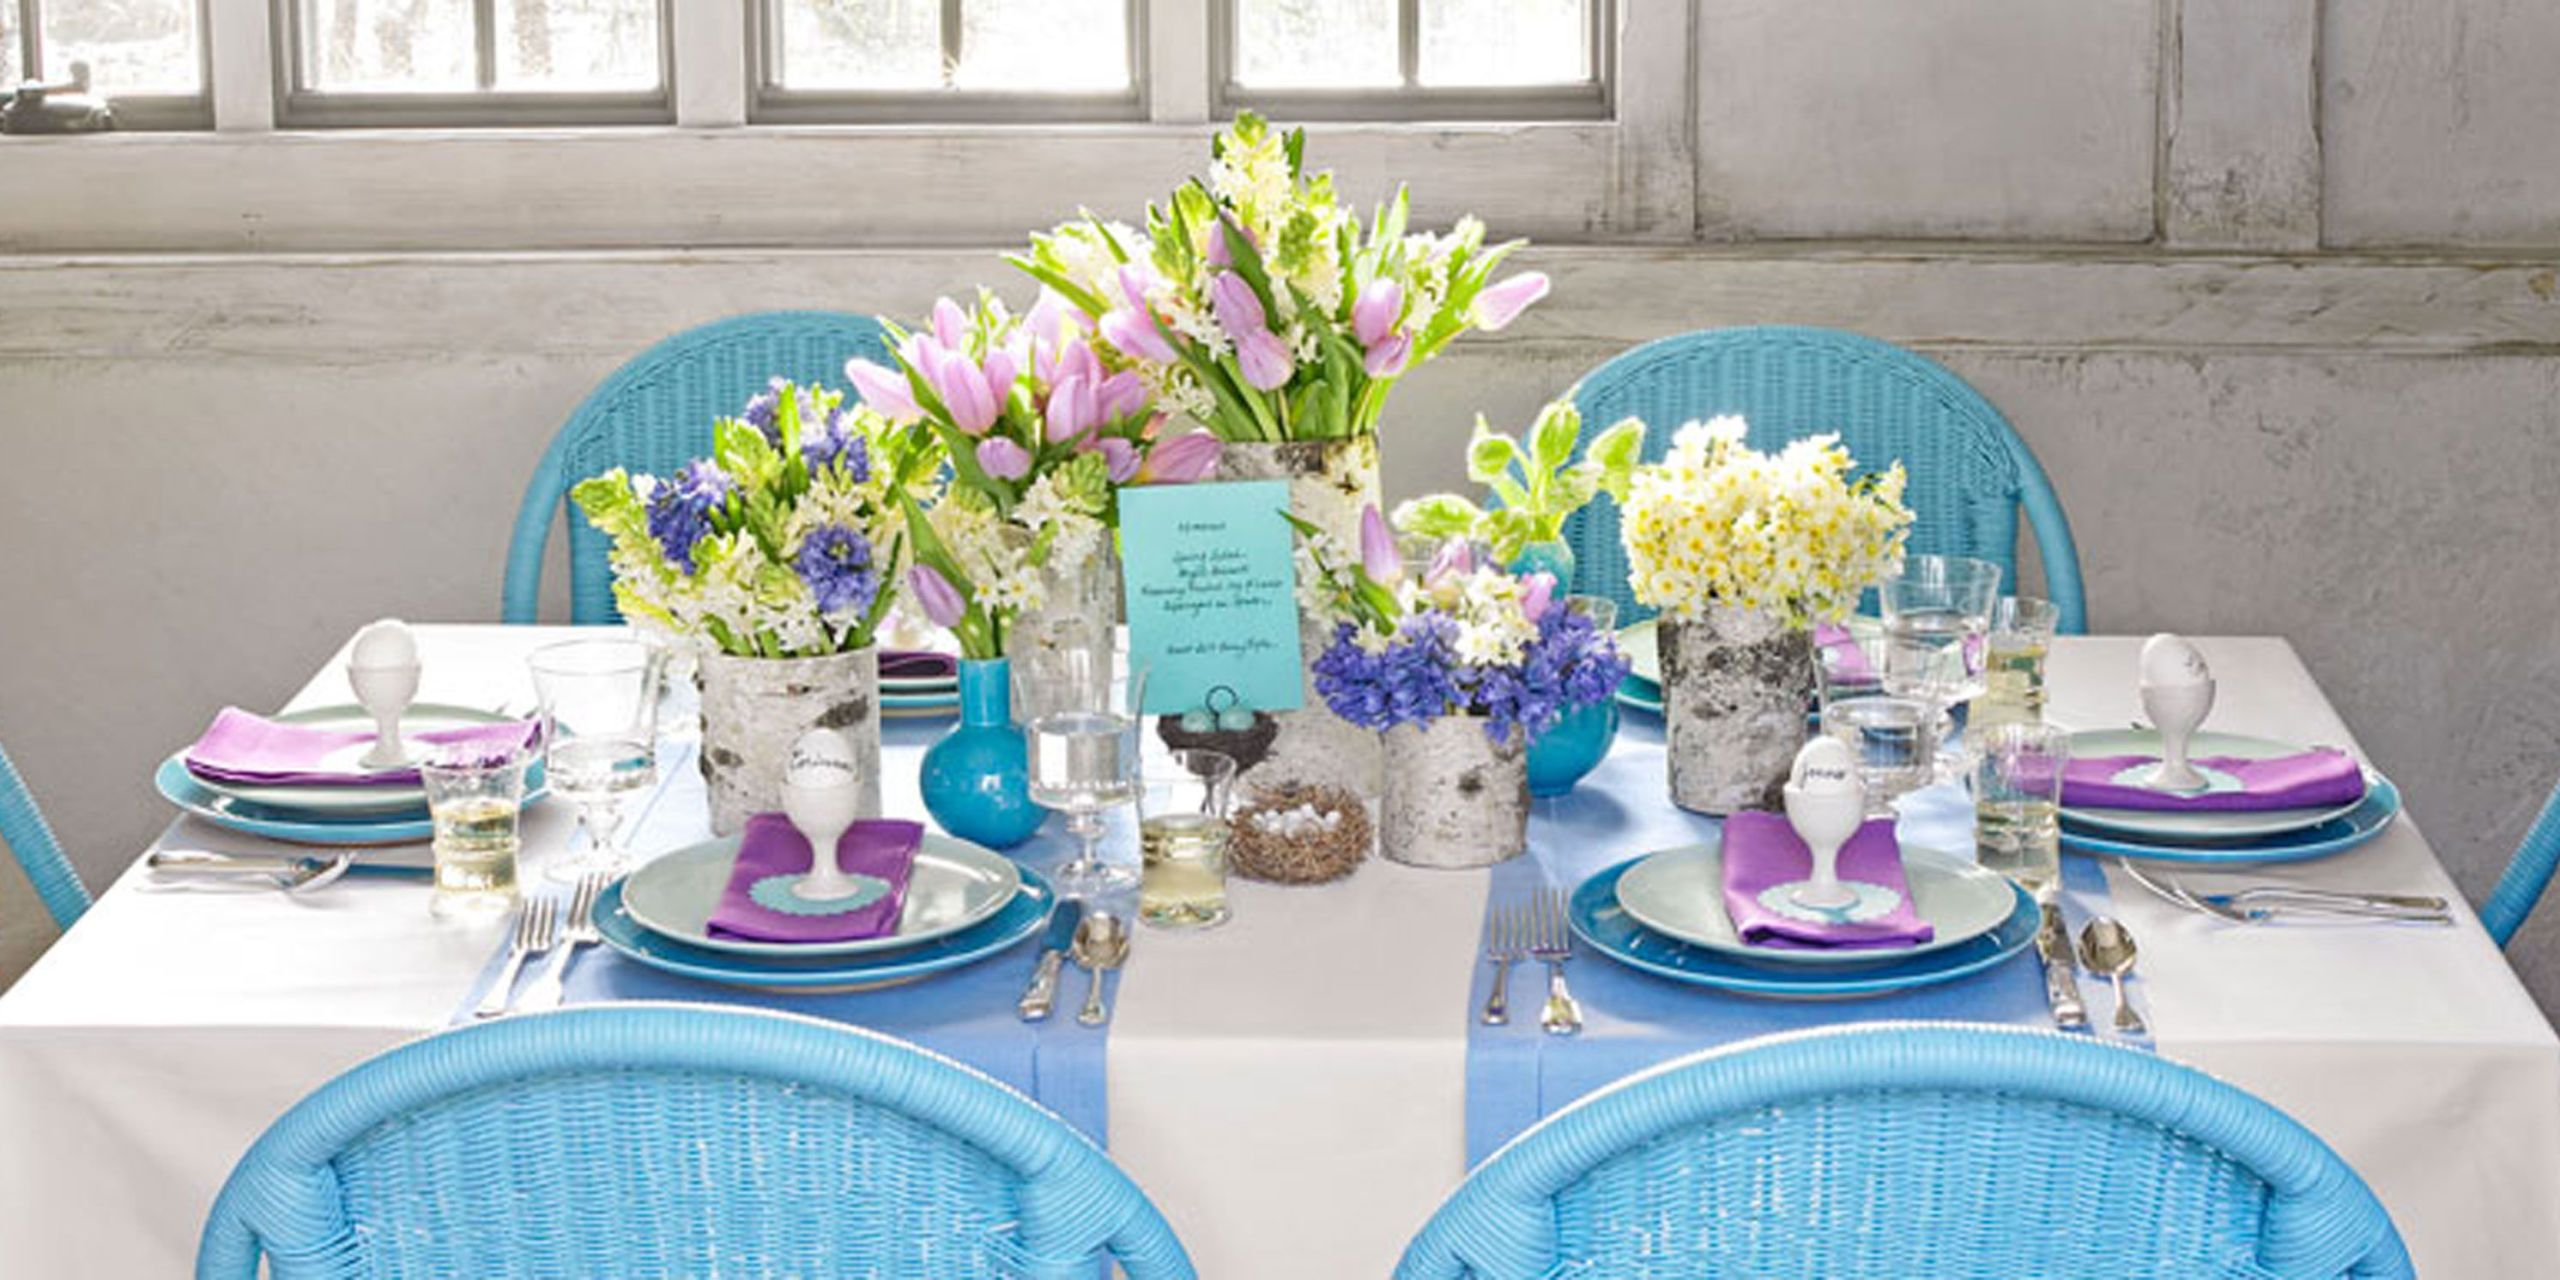 Charmant Bring A Touch Of Spring To Your Table With These Colorful Place Settings,  Centerpieces, And Favors.